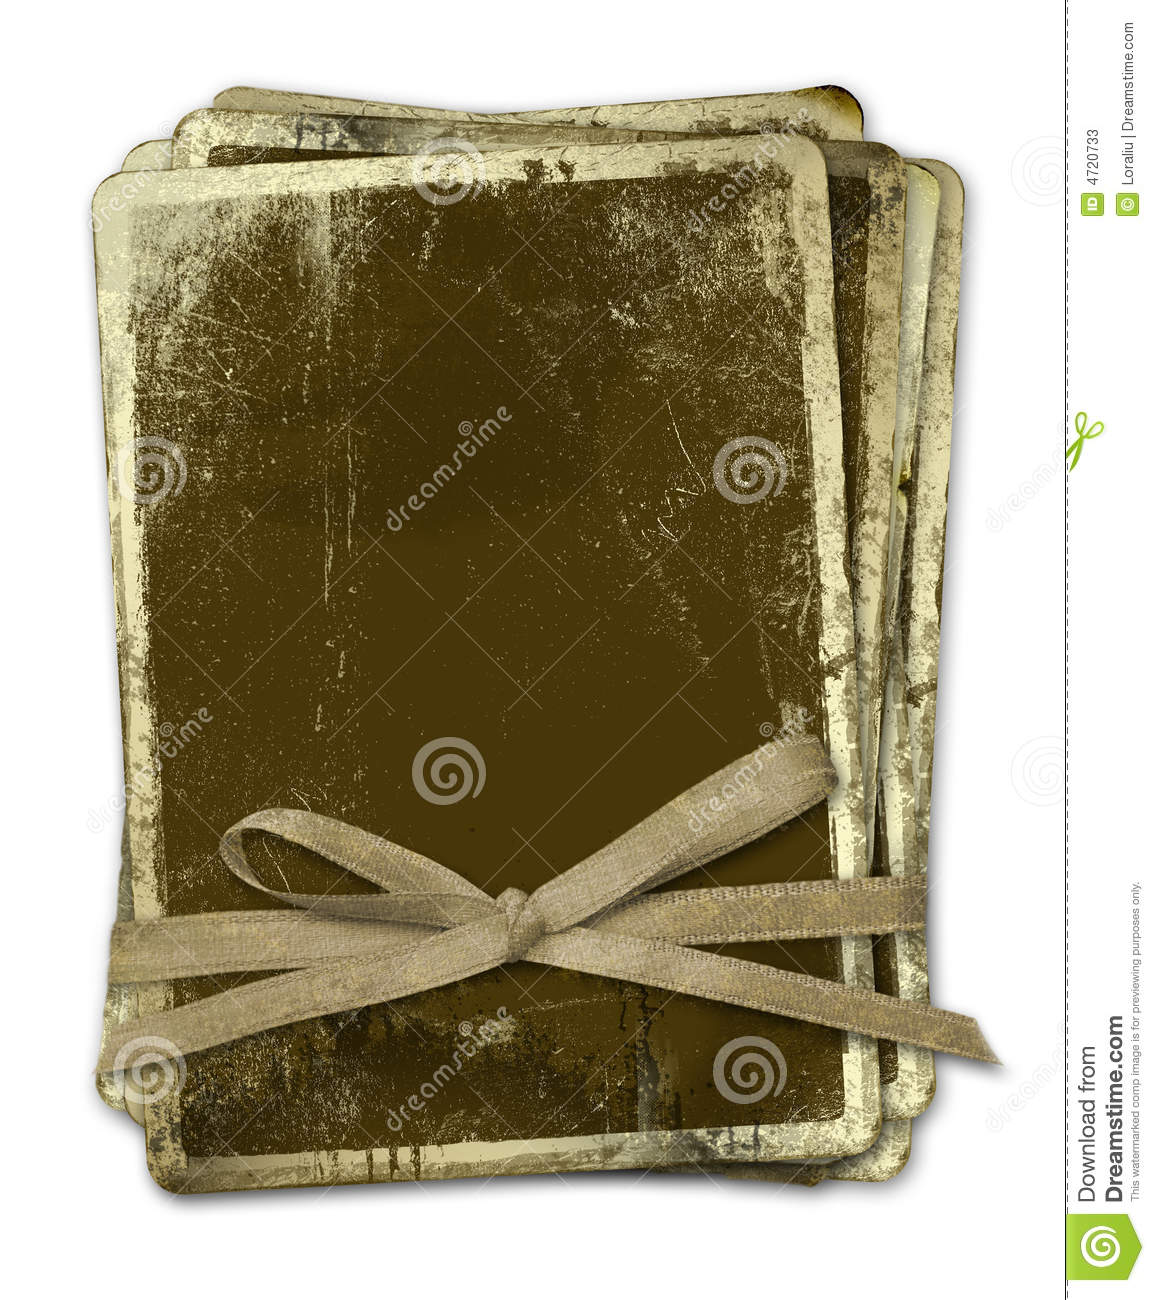 Grunge papers design